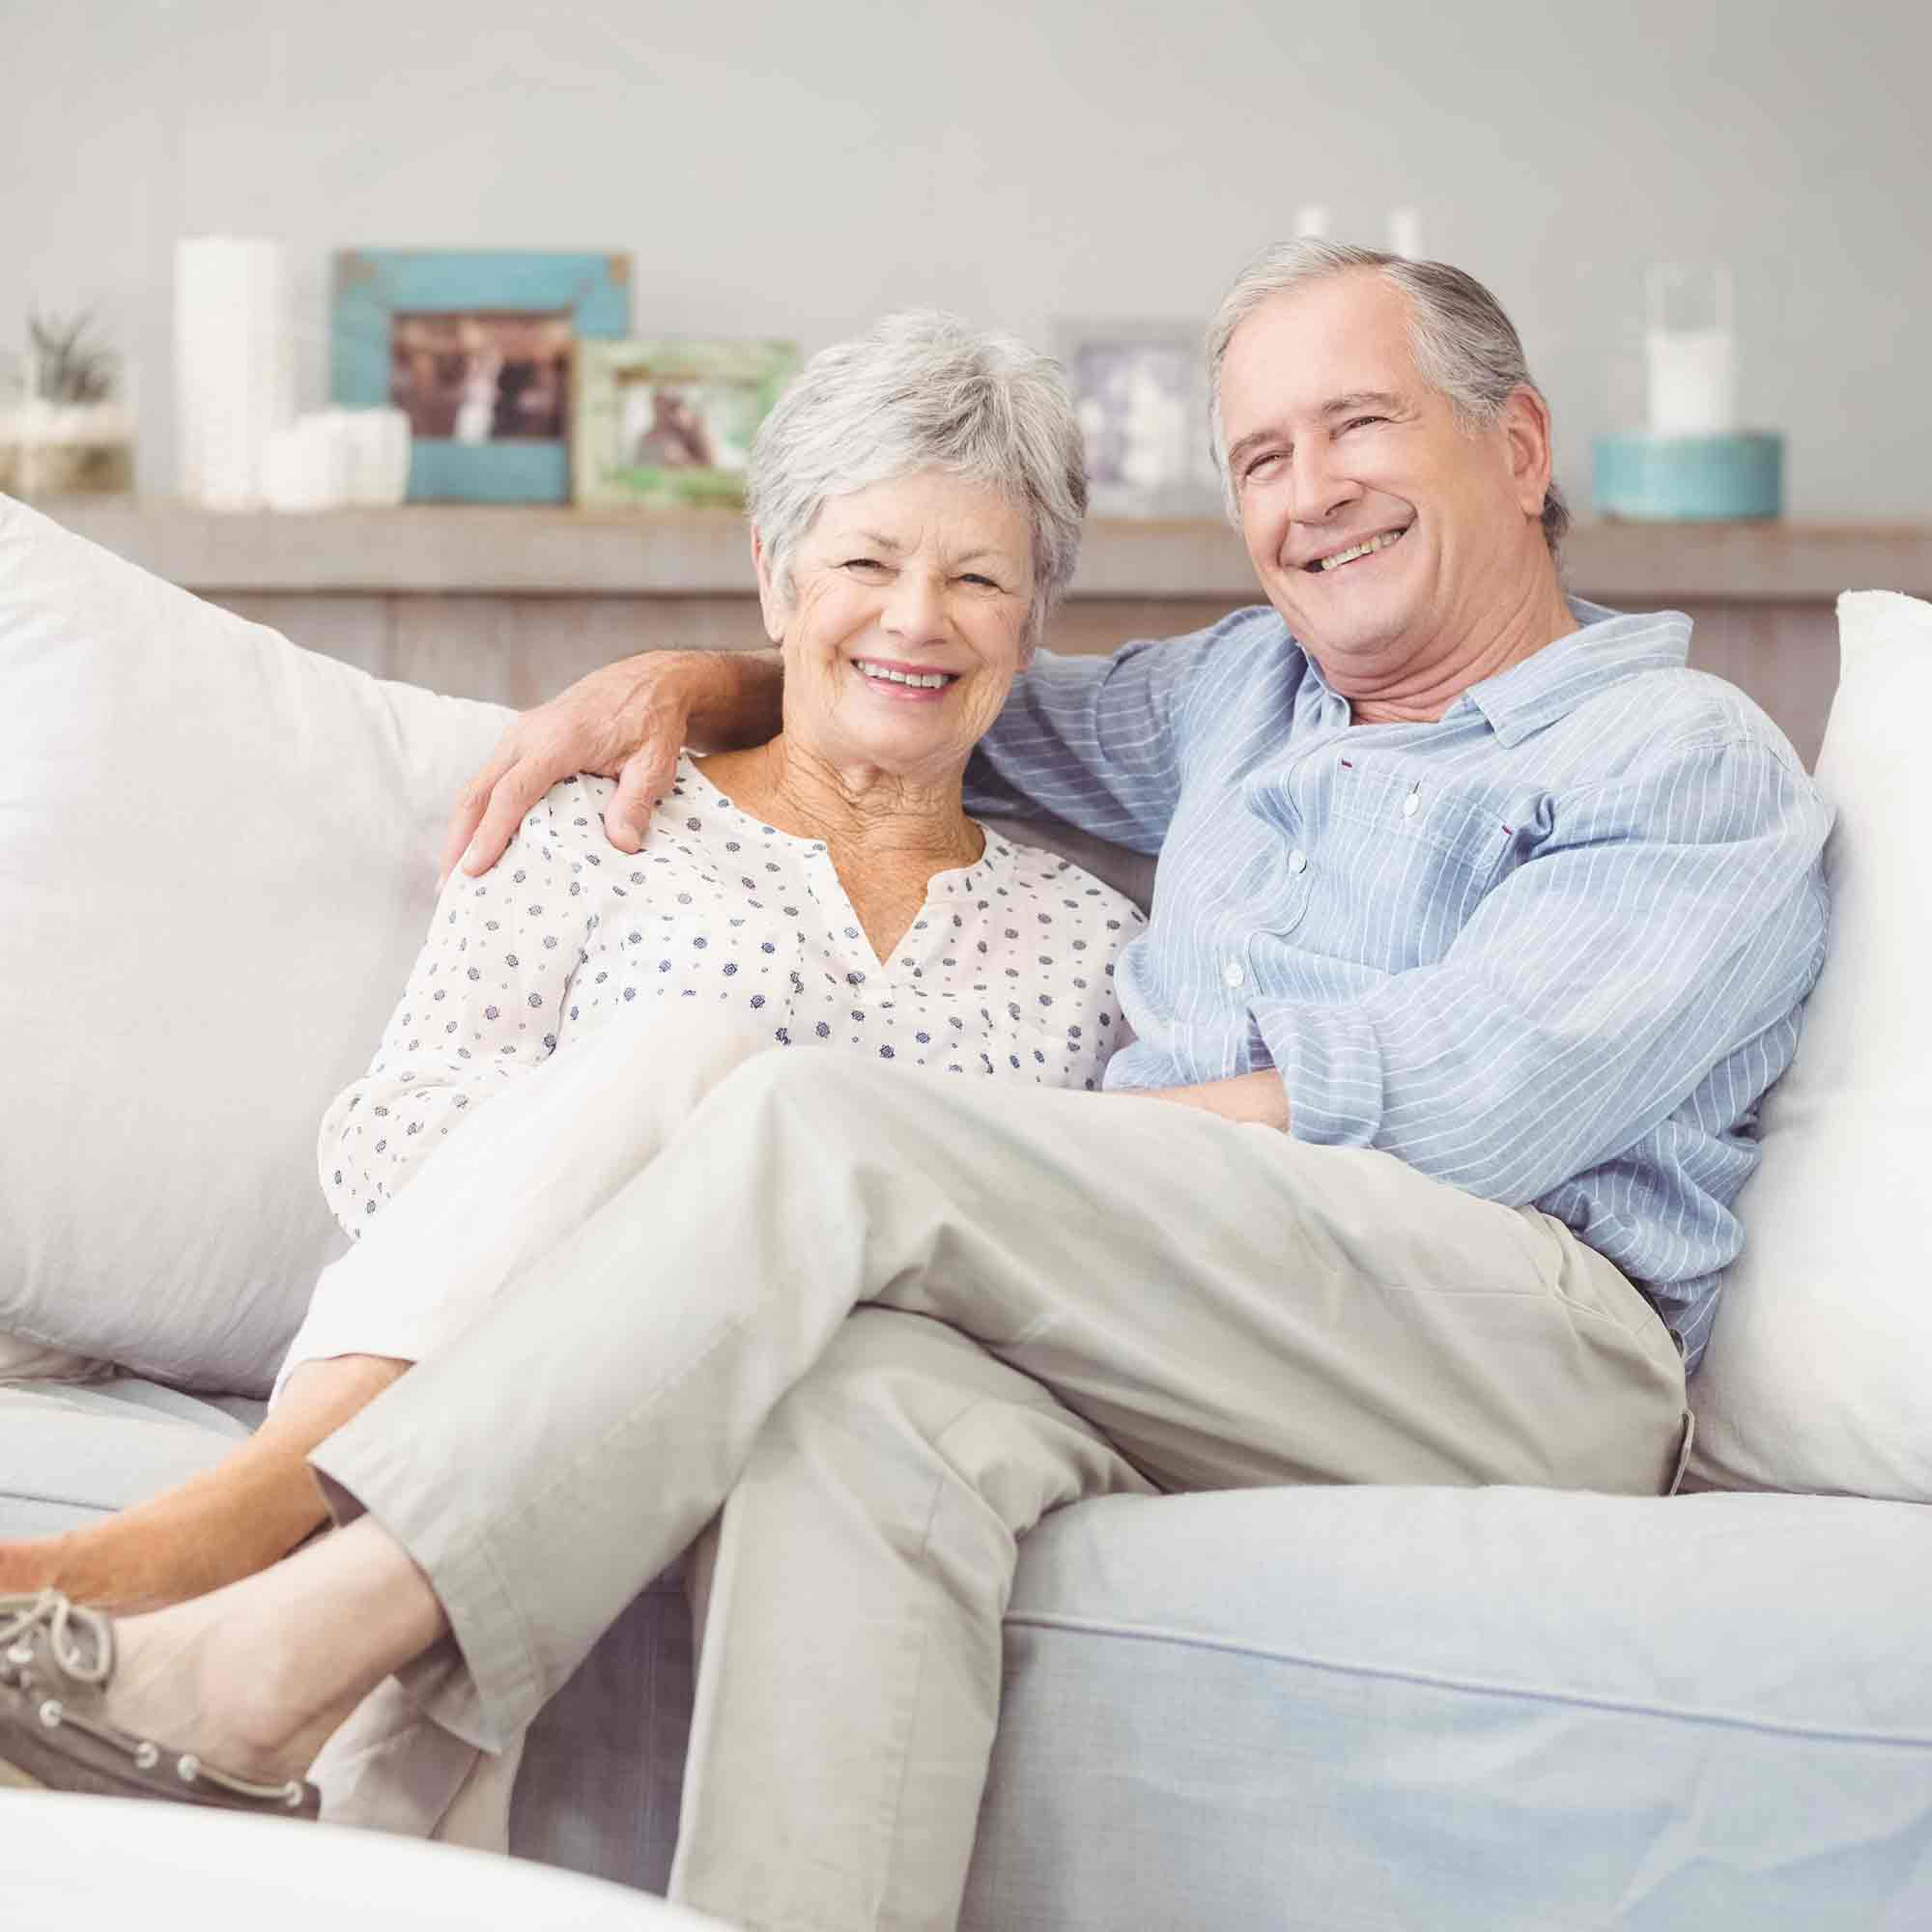 Senior couple sitting on a white sofa with picture frames in the background